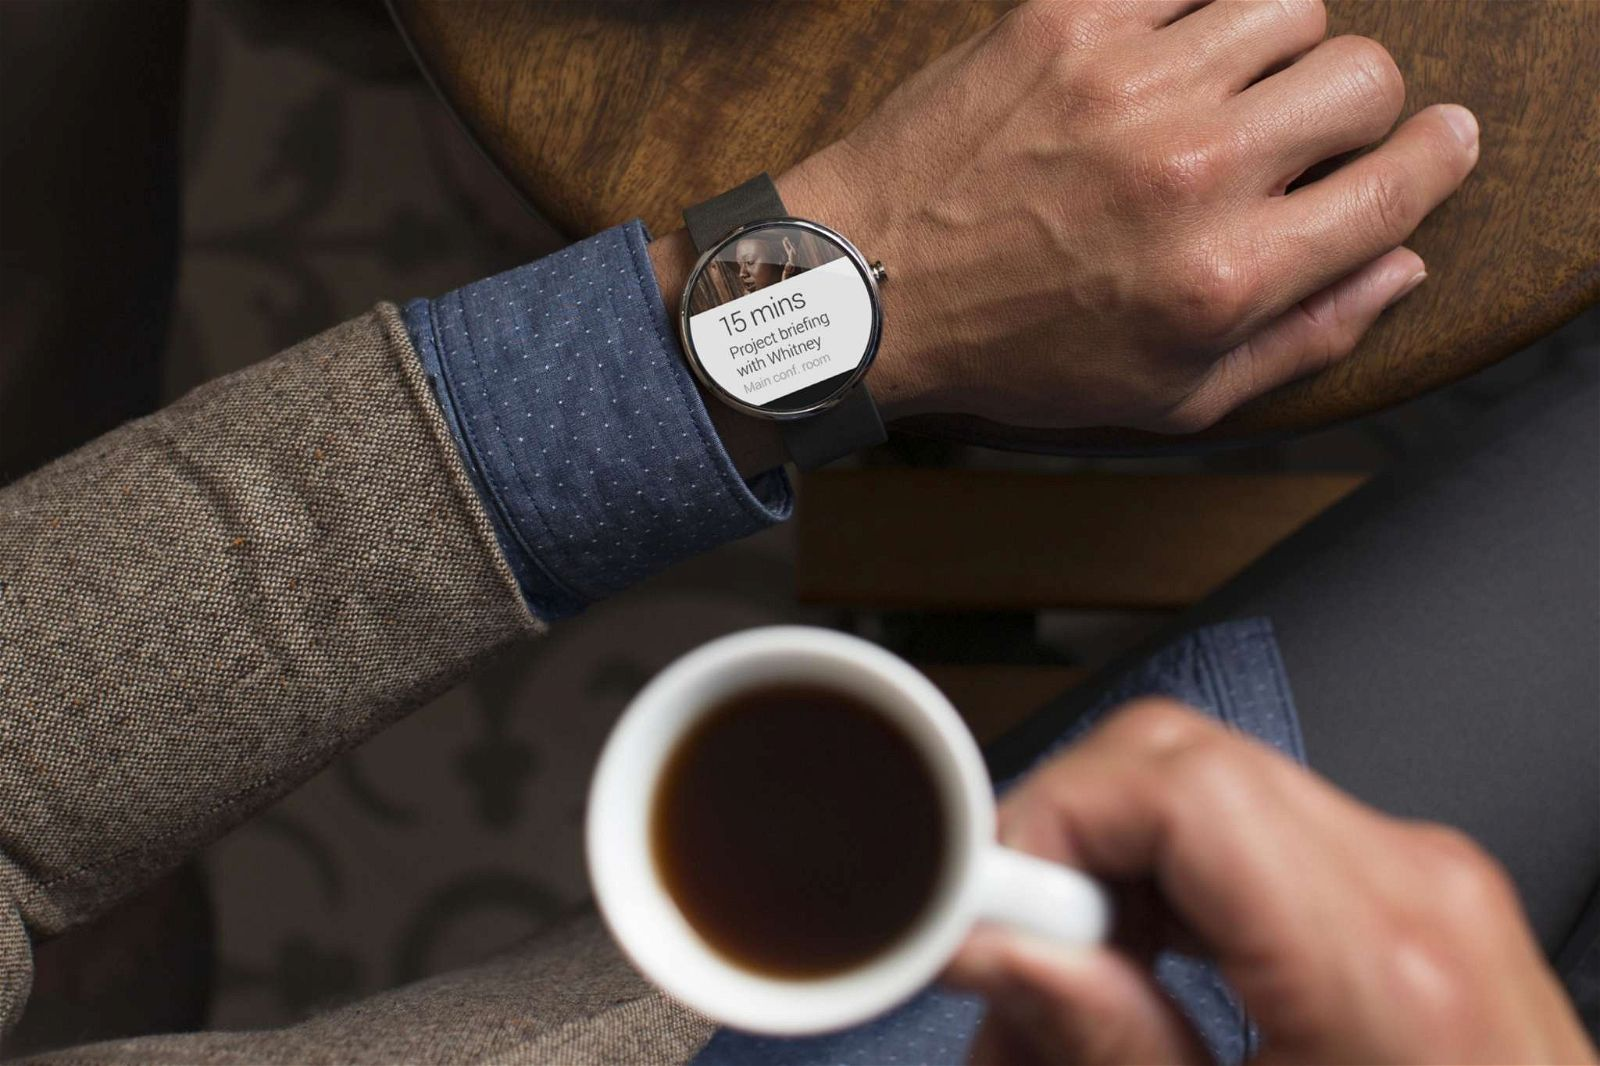 افضل ال wearables في معرض CES 2015